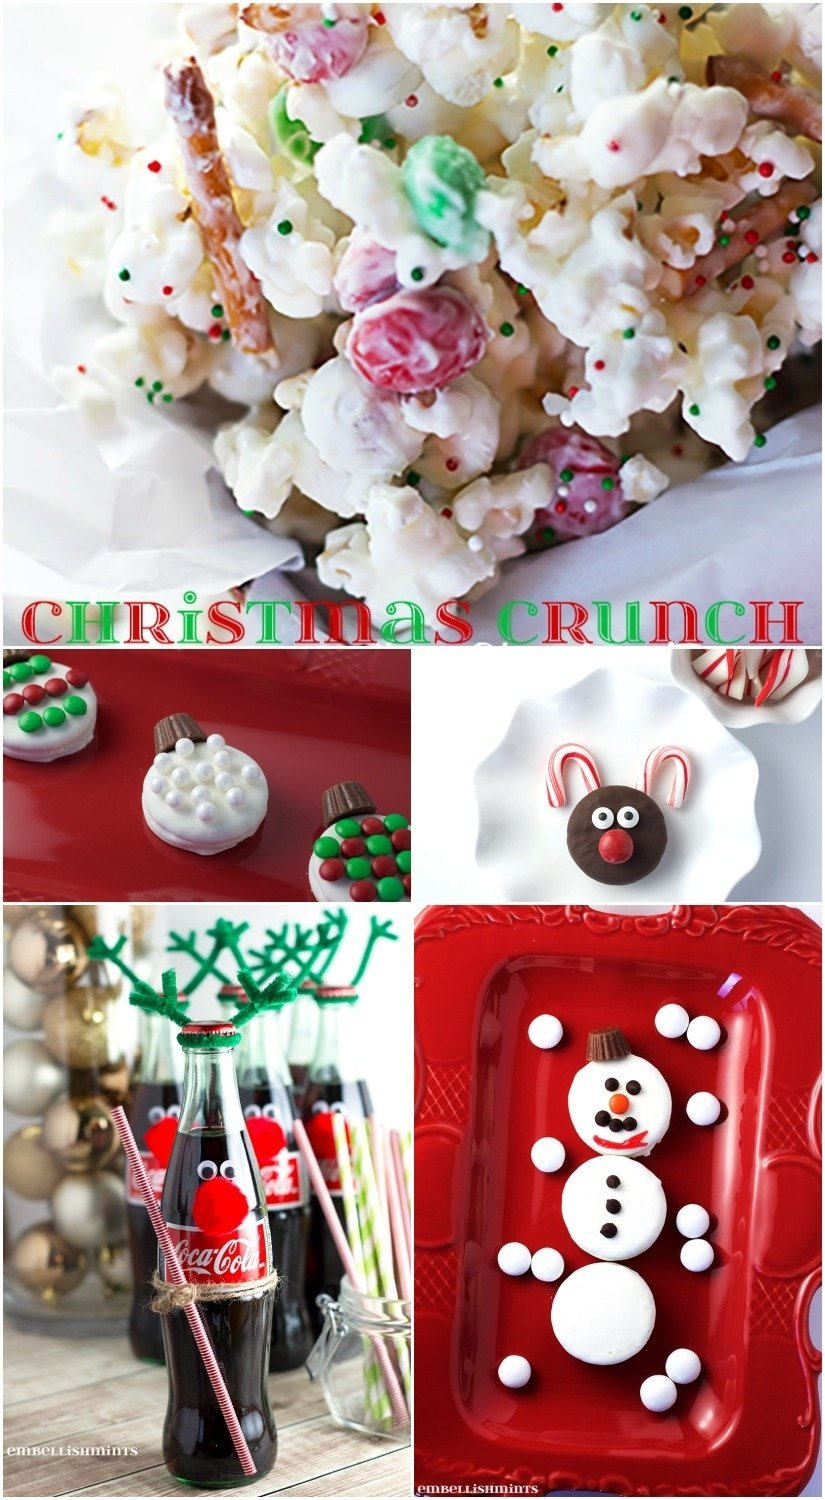 10 Fashionable Ideas For Kids Christmas Party christmas party food ideas for kids embellishmints 1